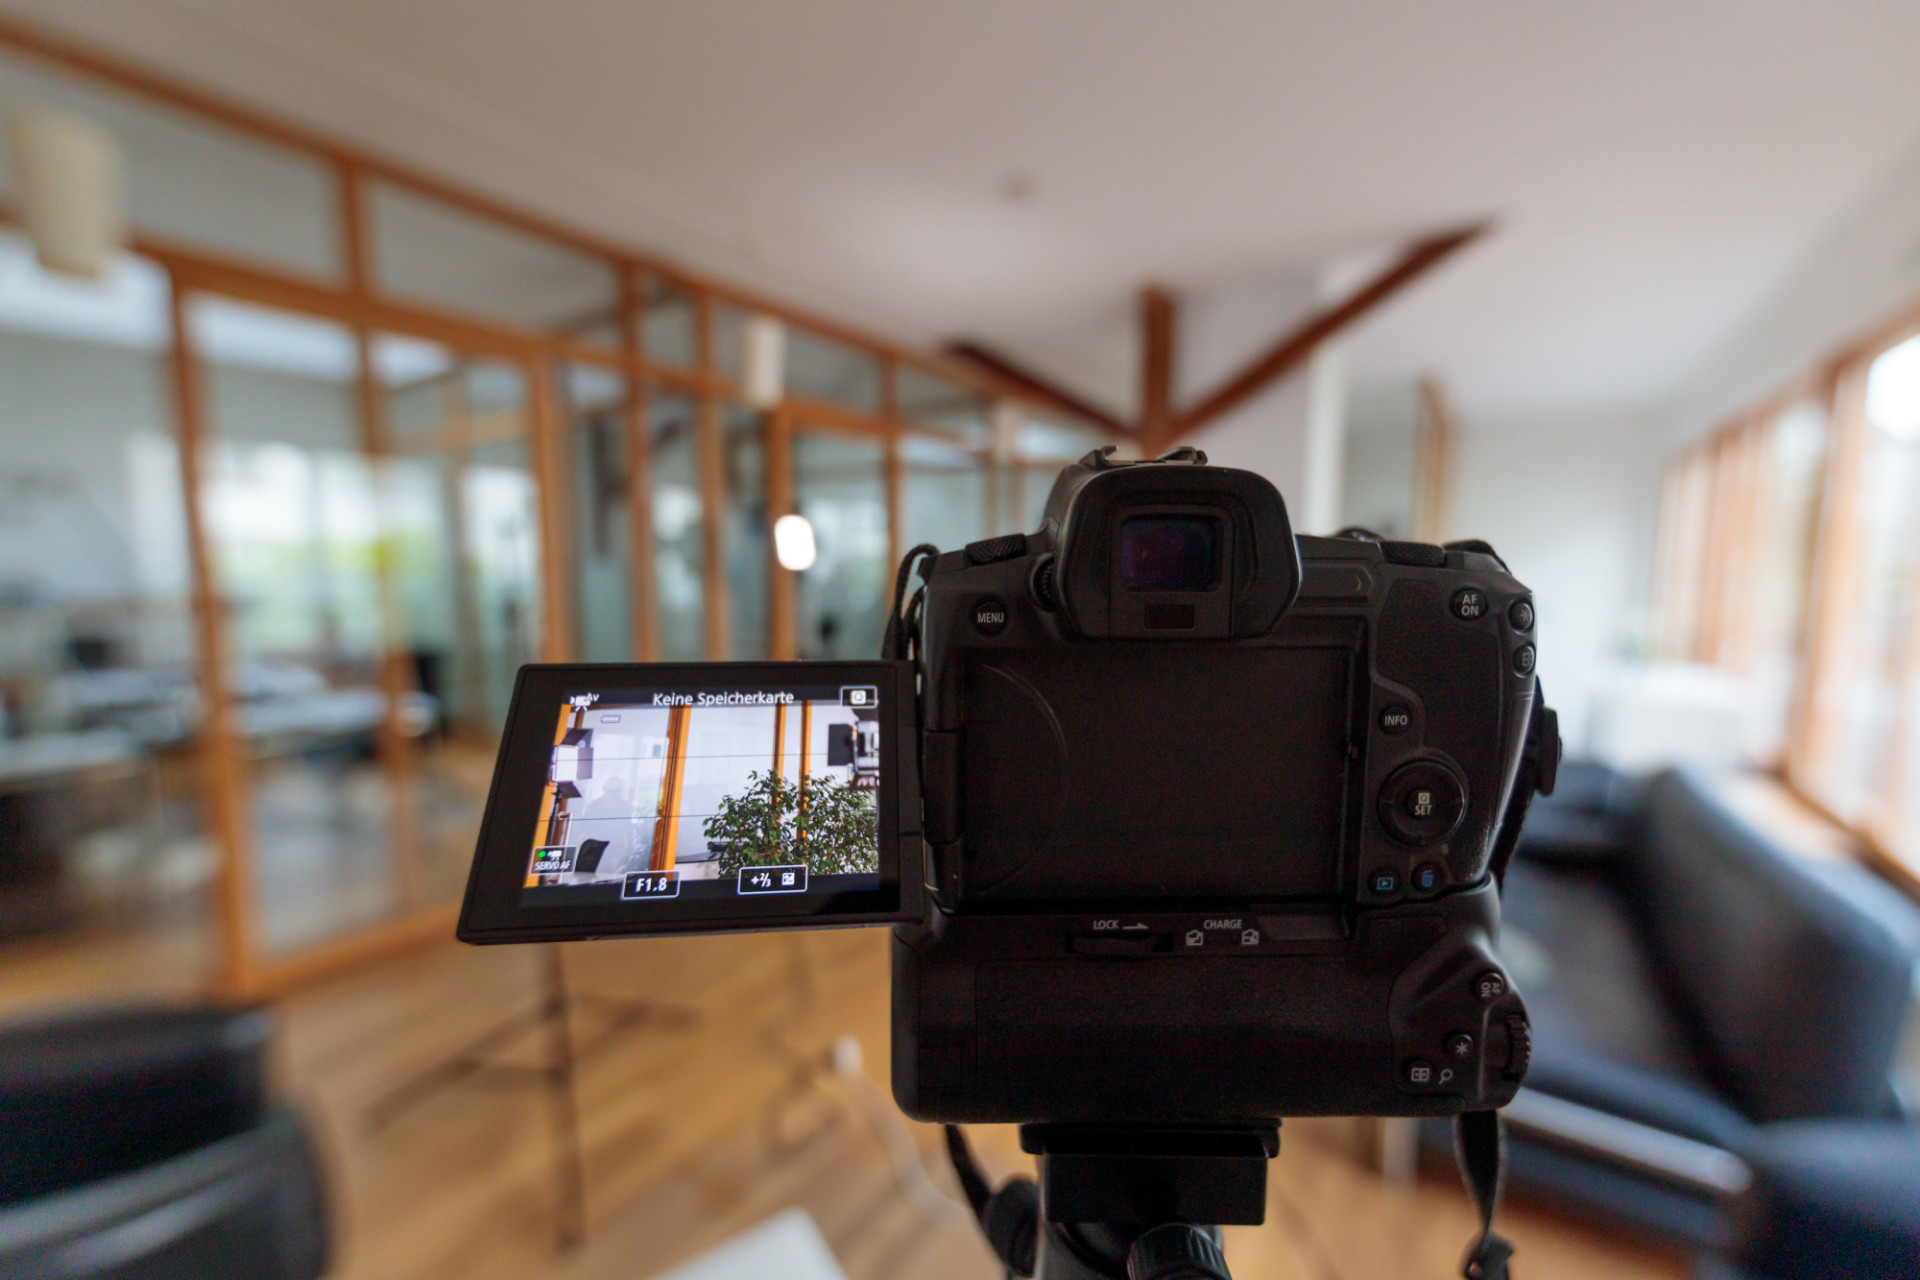 Filming with a full-frame camera